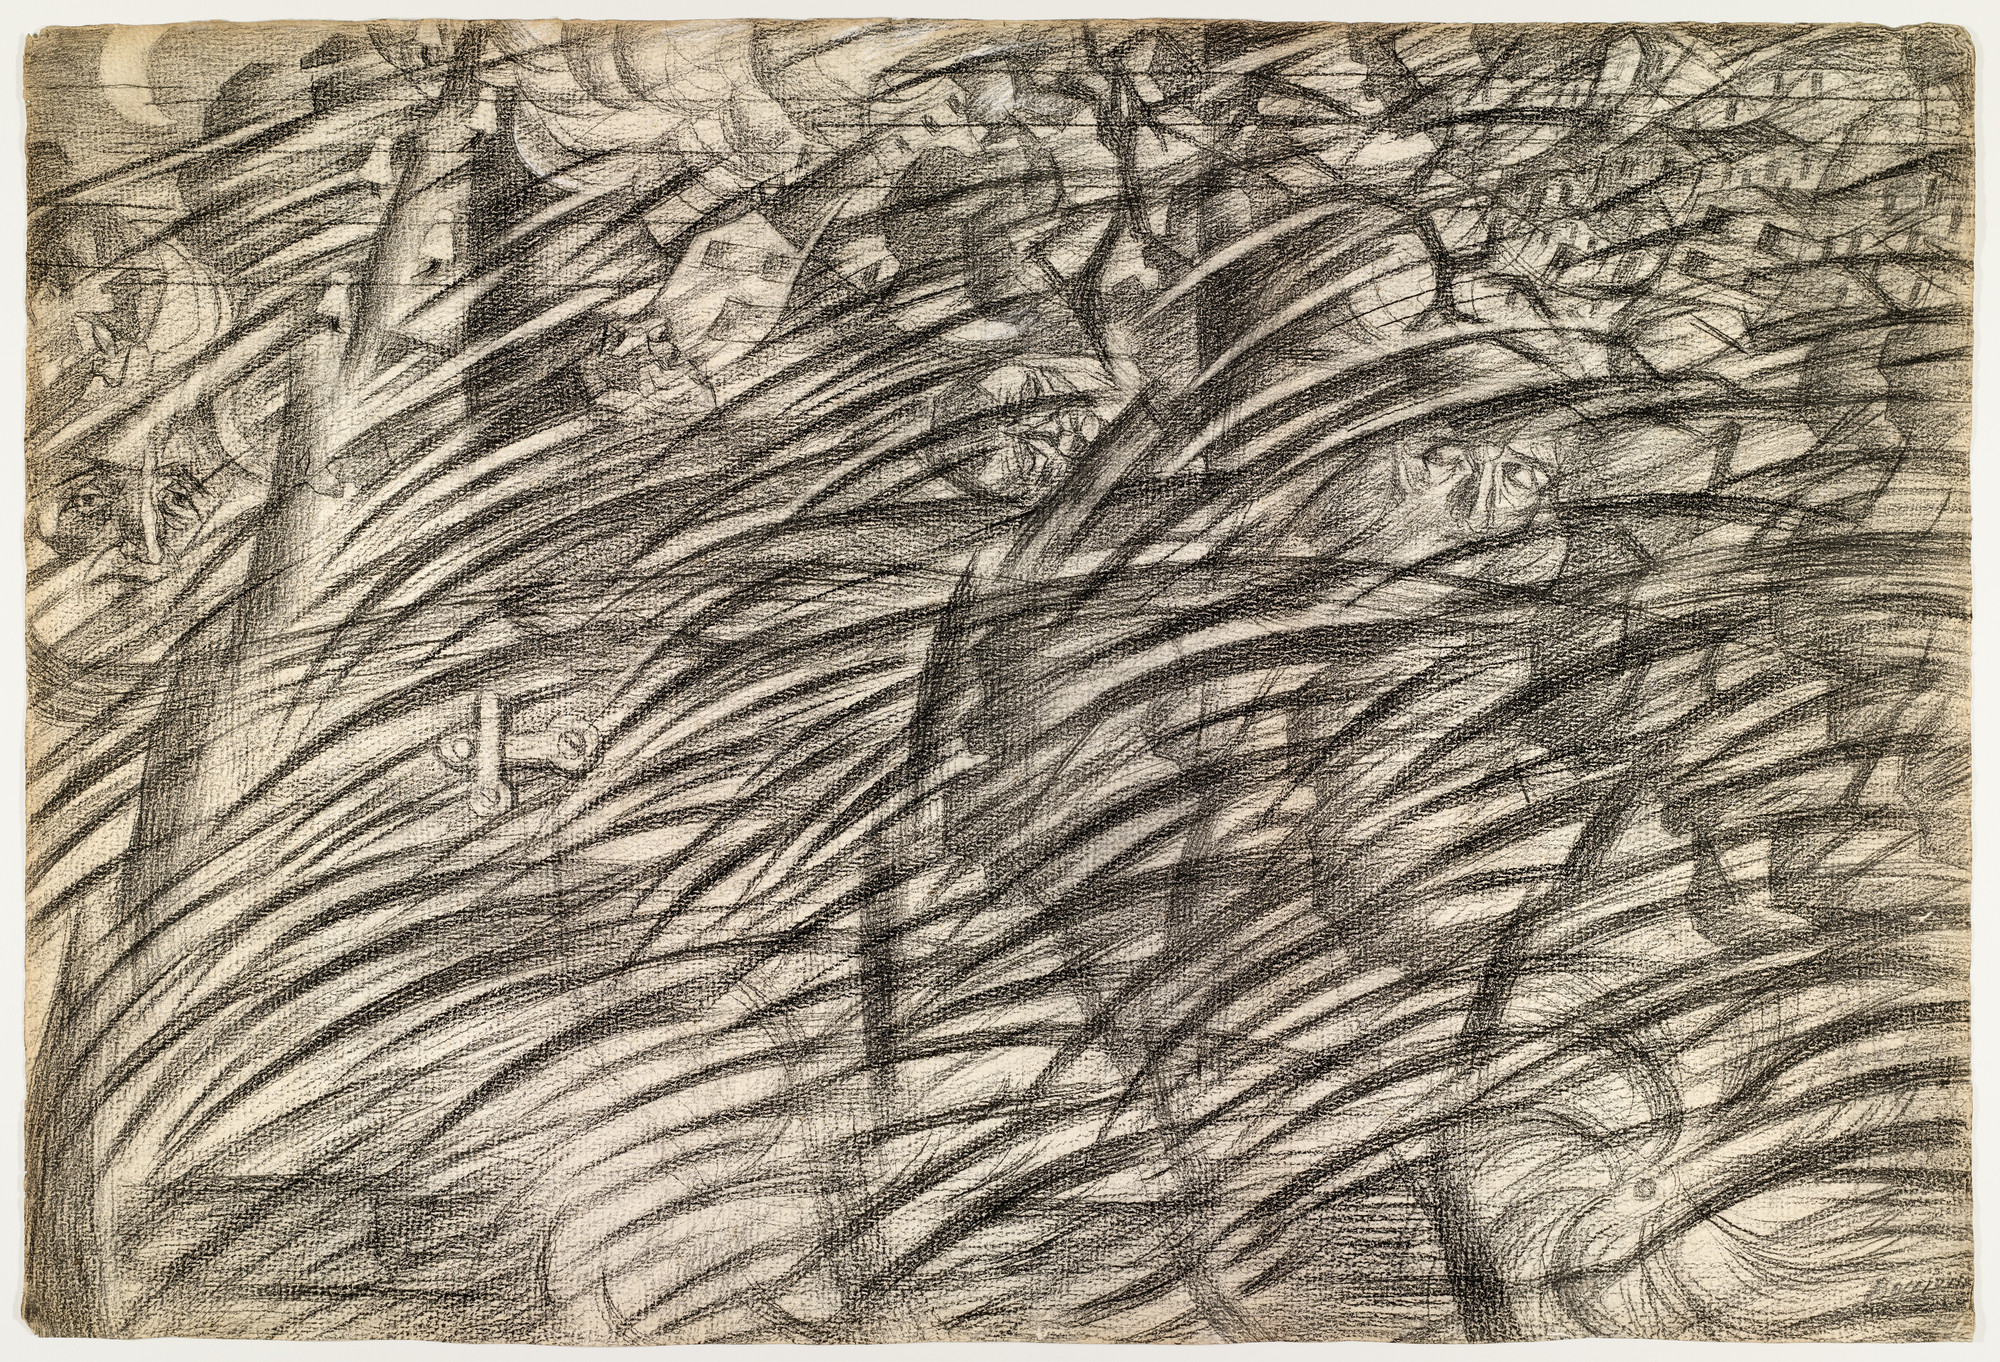 Umberto Boccioni. States of Mind: Those Who Go. (1911)